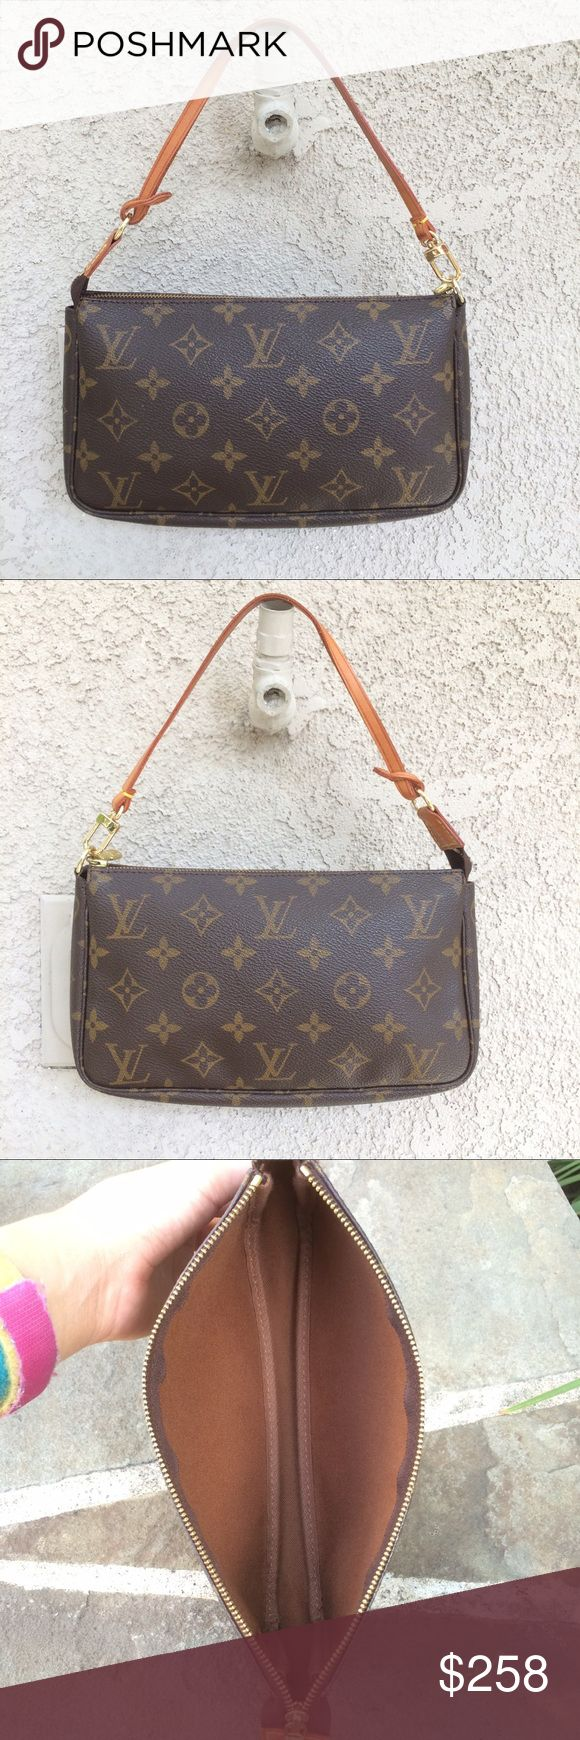 Auth. Louis Vuitton Monogram Accessories Pochette Auth. Louis Vuitton Mono. Accs. Pochette. Excellent pre-owned condition. The inside is very clean & has NO stains at all, & no odor. The canvas is in excellent condition w/NO stains, cracks or rips at all. The stitching & piping is all intact. The piping has NO cracks or stains at all. The strap has a minor mark on it. On some parts of the strap the glue has kind of un-glued, but it's not noticeable at all. The D-ring has no rips or cracks…